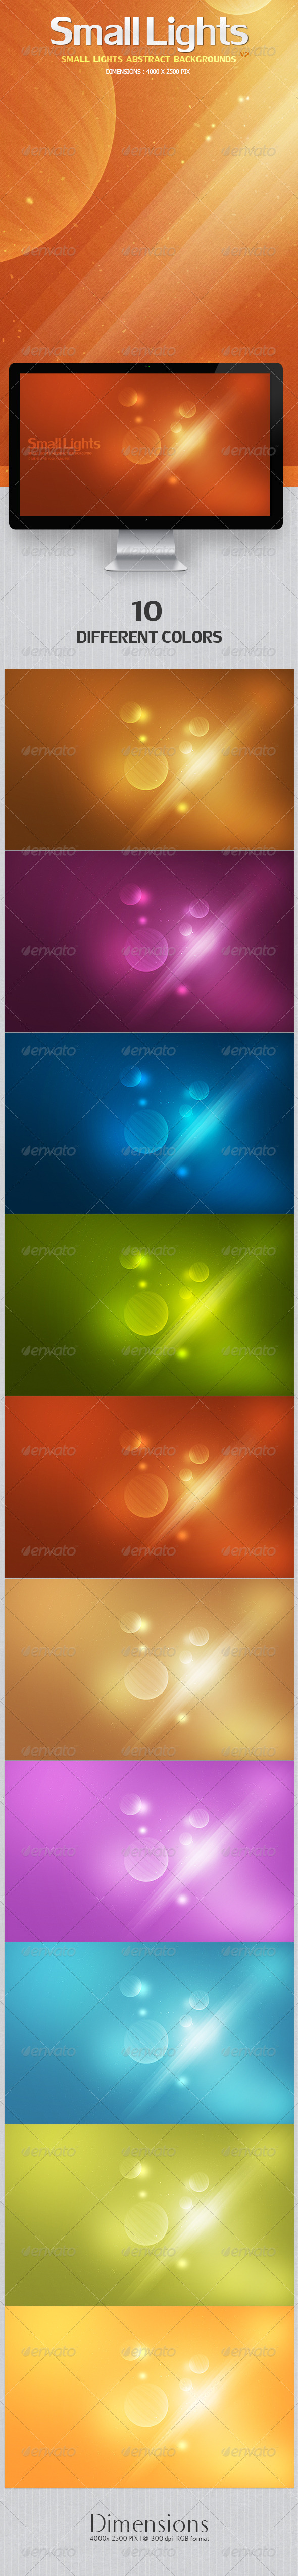 GraphicRiver Small Lights Abstract Backgrounds v2 4266323